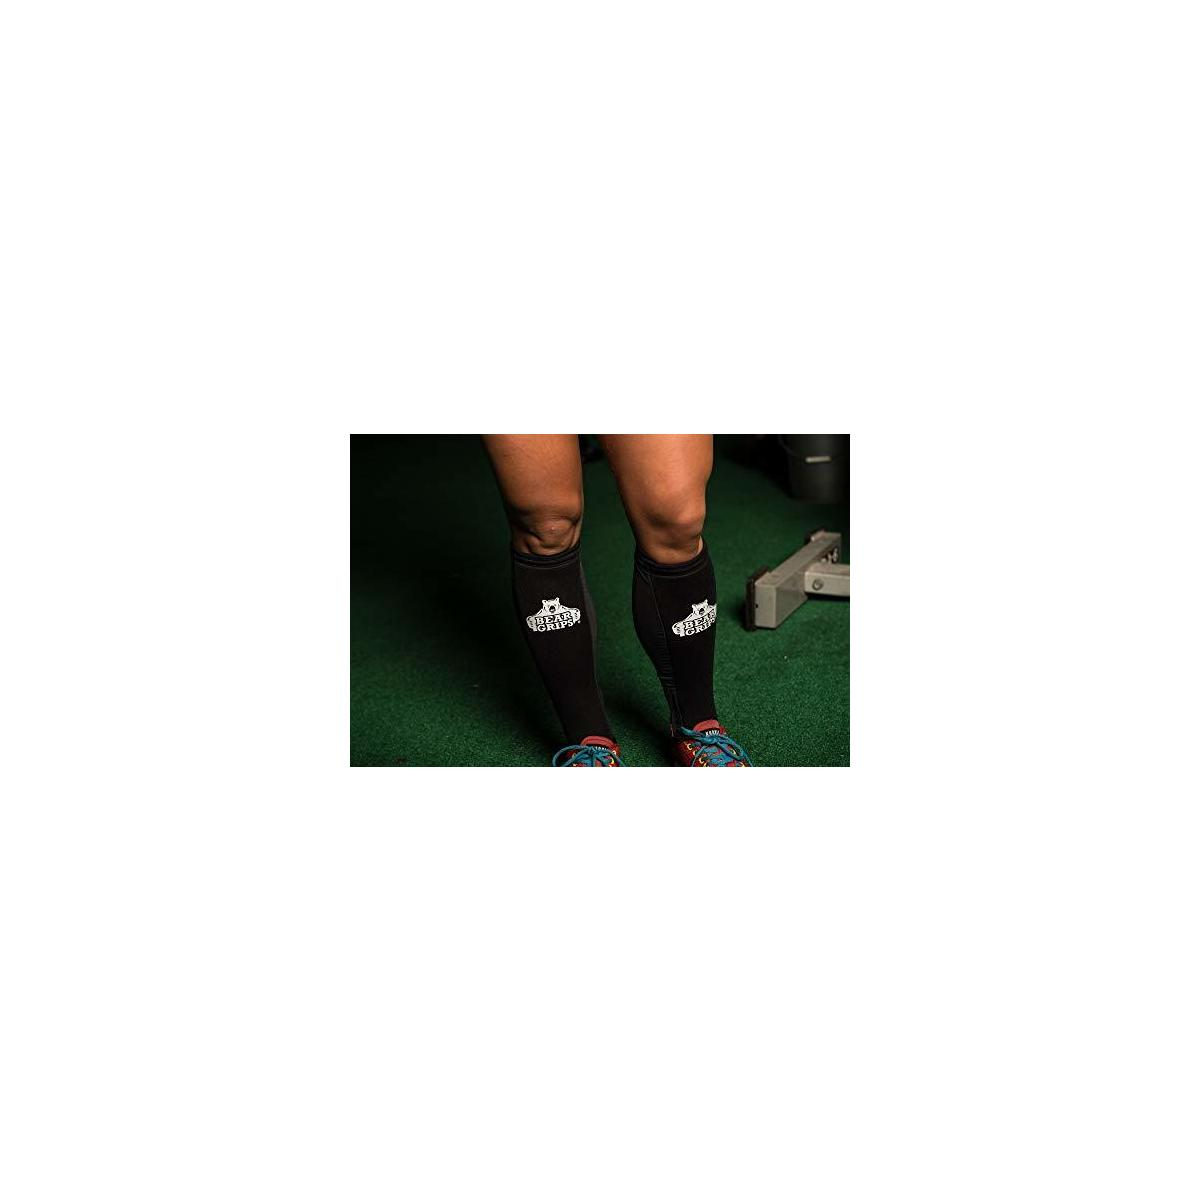 Bear Grips  Shin Guards Sleeves. with 5mm of Padded Leg Protection. for Crossfit, Rope Climbing, Deadlifting. Color Black, PAIR